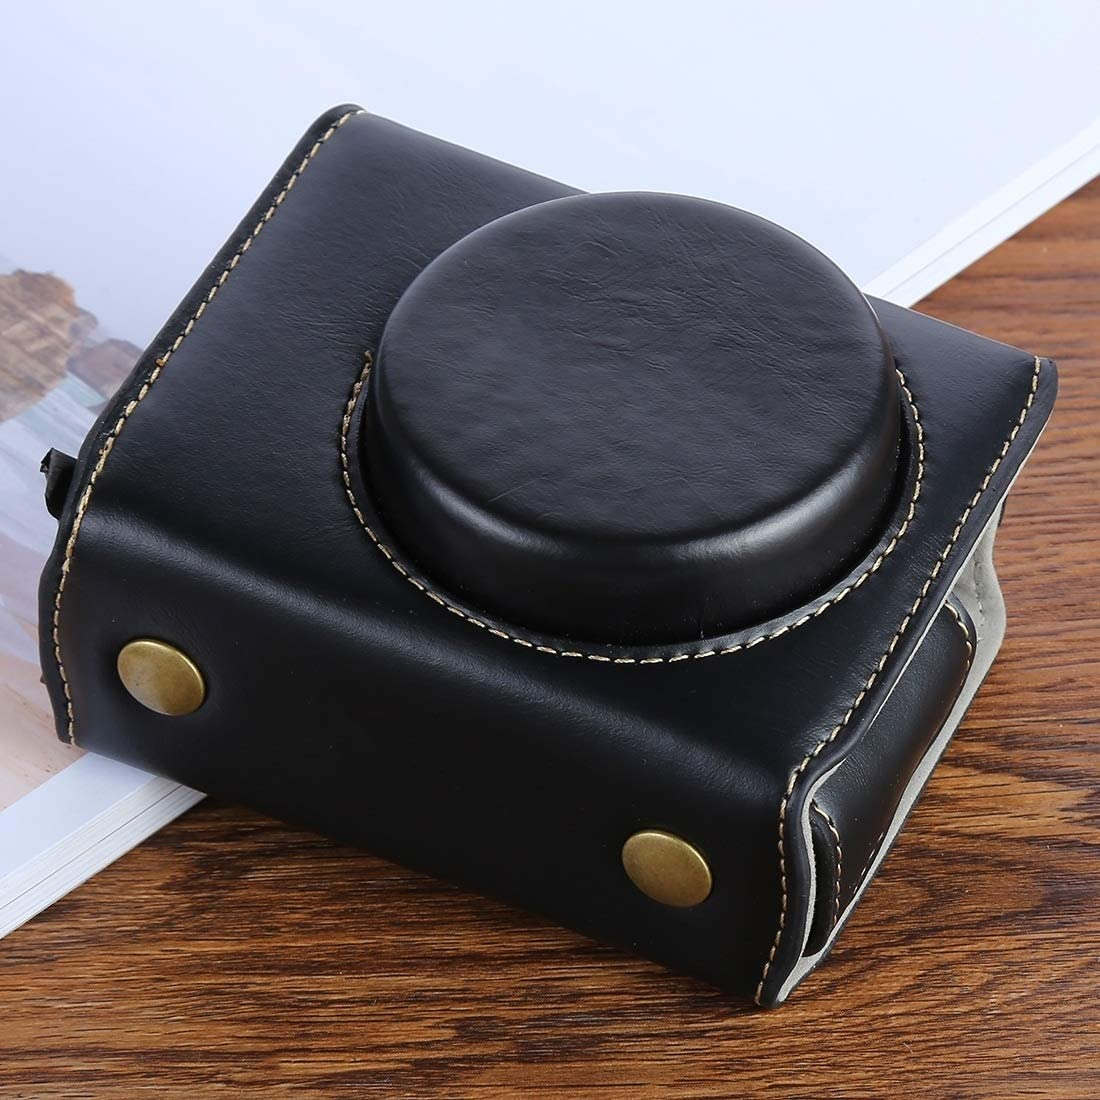 Color : Brown G7XII PU Leather Camera Protective Bag for Canon Powershot G7X Mark 2 G7XII Digital Camera Ychaoya Camera Bag Wuzpx with Strap Black